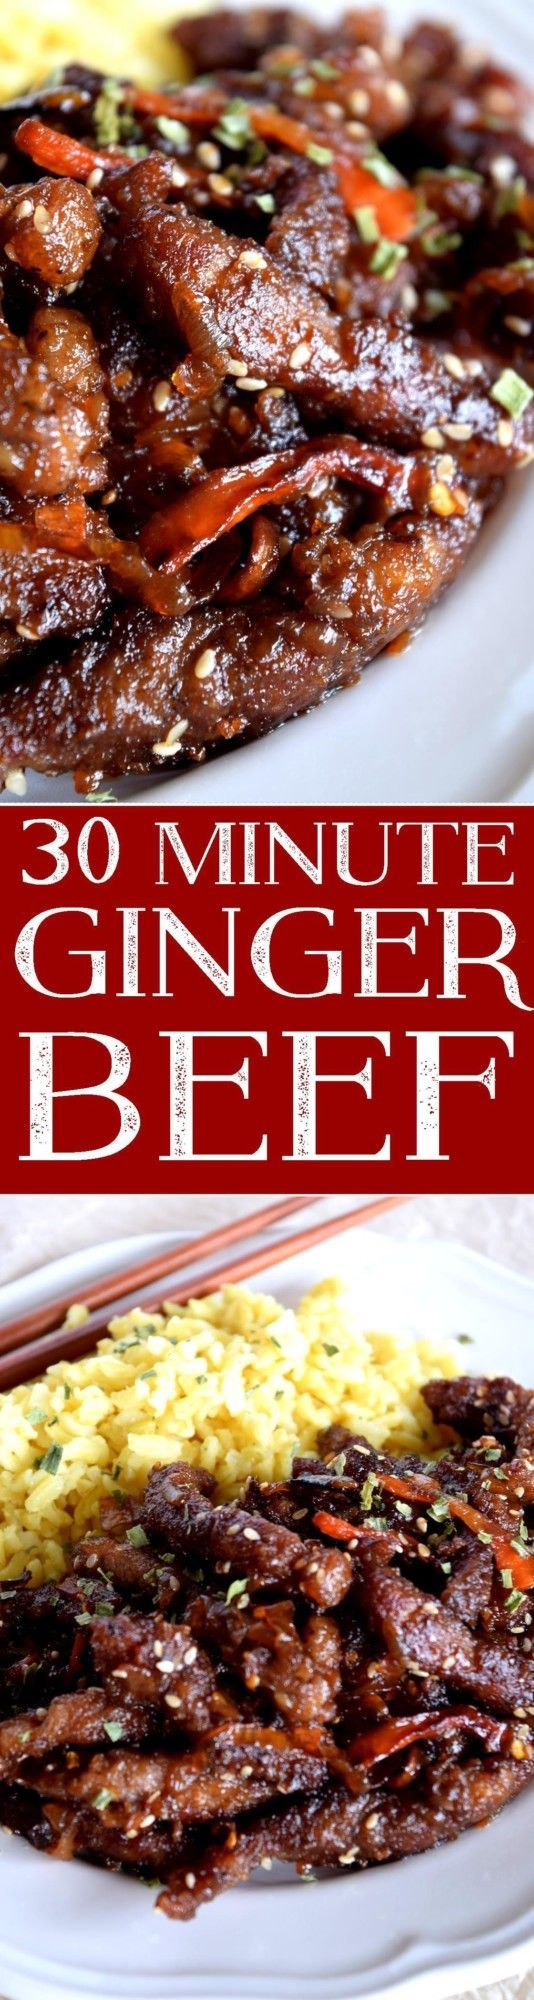 Ginger Beef. I prefer poaching instead of frying, but try different things and see if what you like best